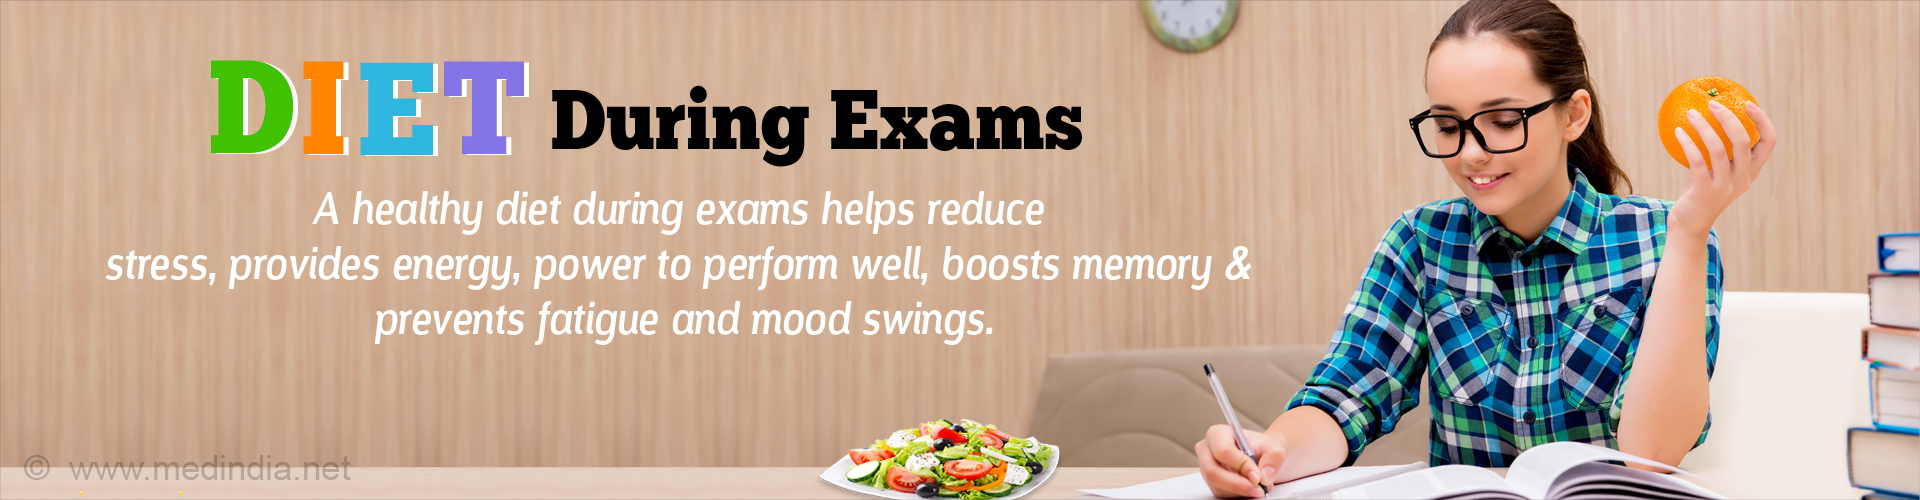 Diet during exams